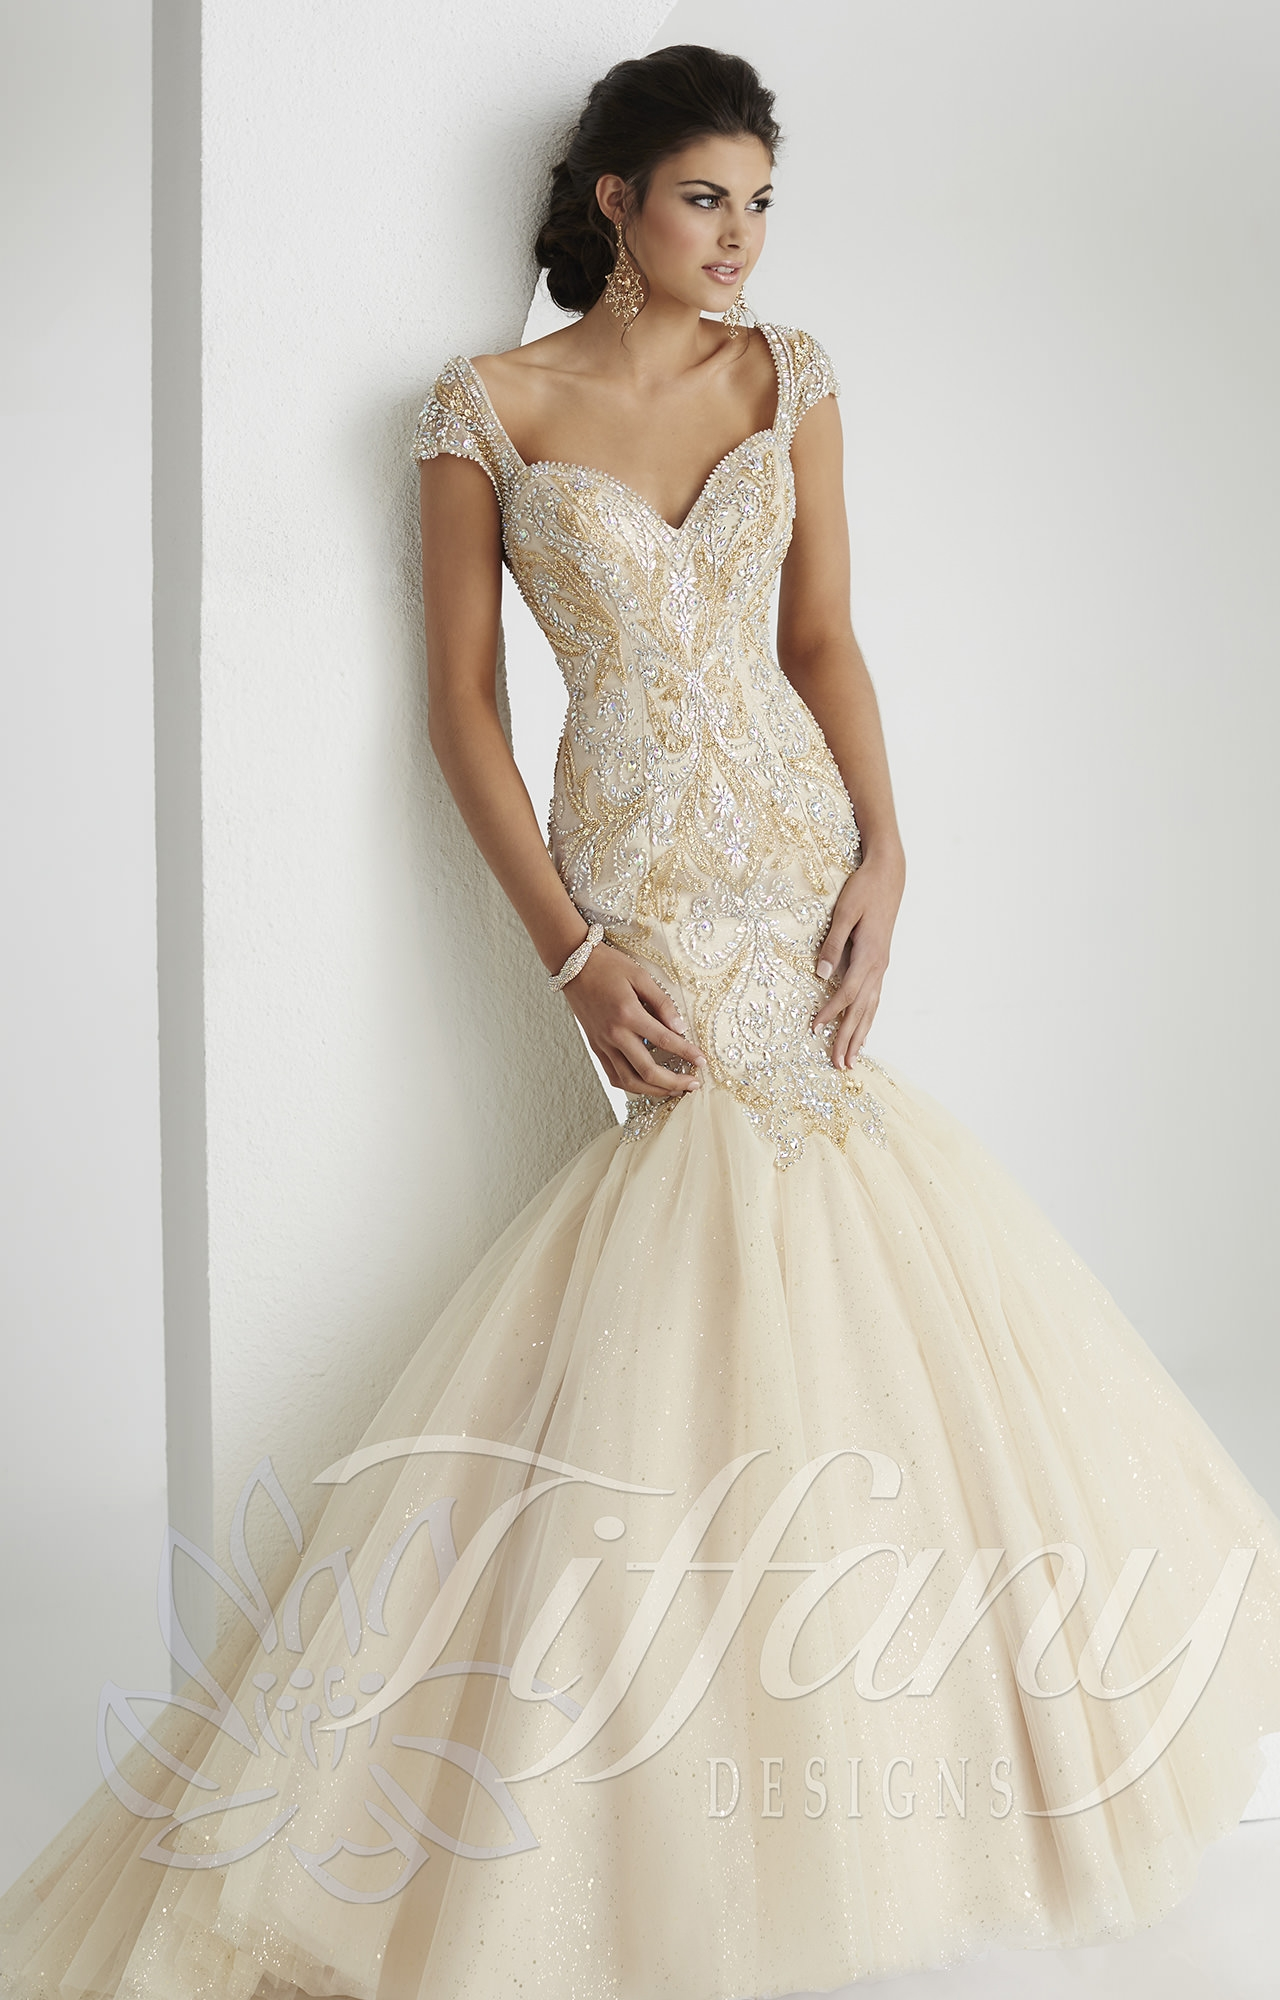 Tiffany Designs 16145 Gone With The Wind Dress Prom Dress